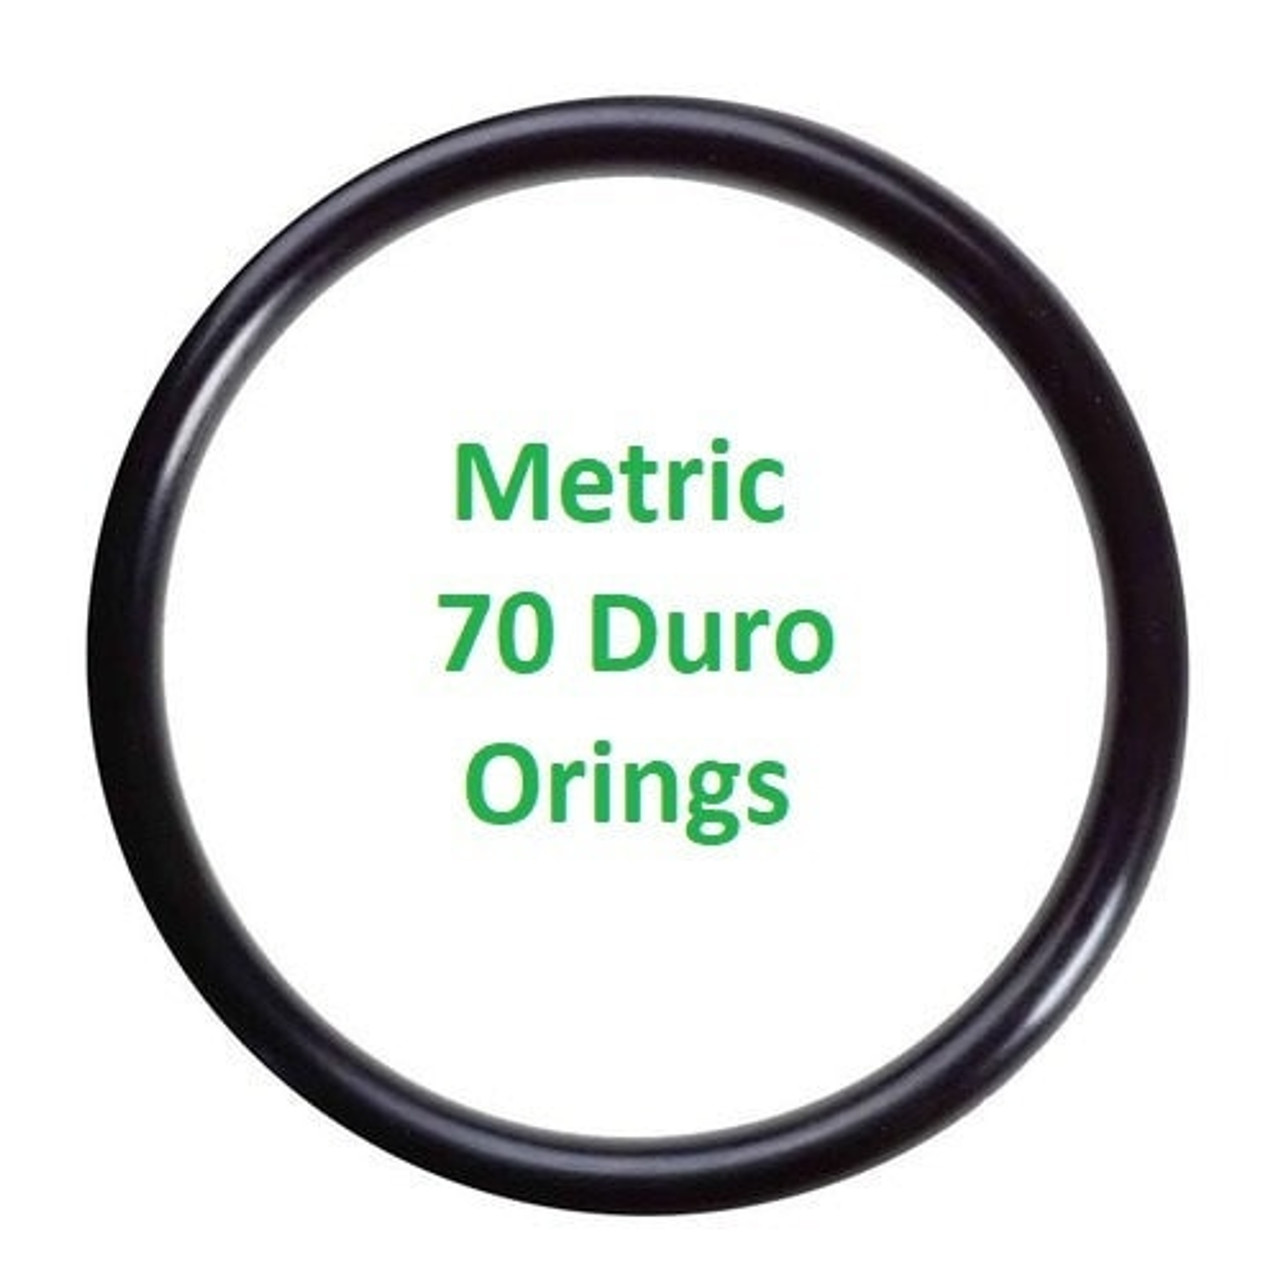 Metric Buna  O-rings 18.8 x 2.4mm JIS P19 Price for 10 pcs